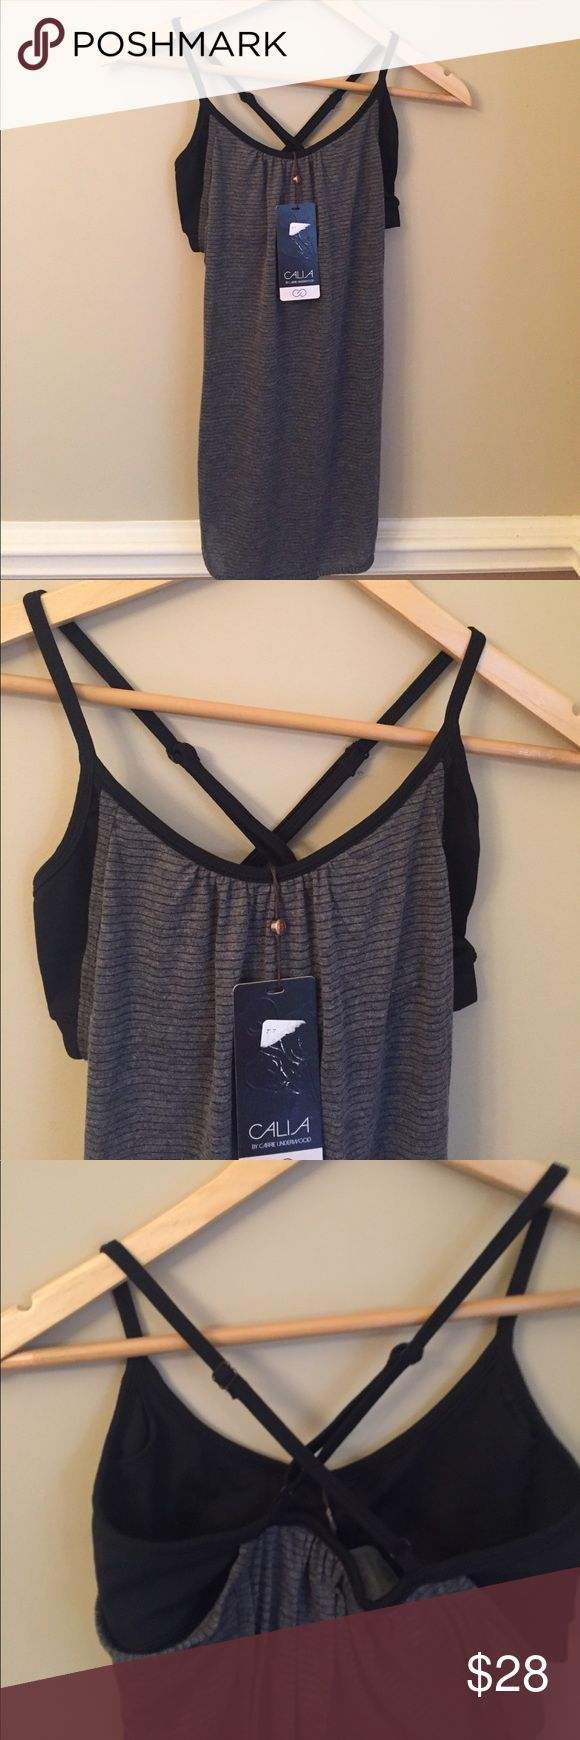 🌸NWT CALIA by Carie Underwood Bra Shelf Tank🌸 Brand New with Tags CALIE by Carie Underwood grey with black stripes tank top. Loose fitting with black bra shelf. Size XS. Very soft material. Smoke free home CALIA by Carrie Underwood Tops Tank Tops